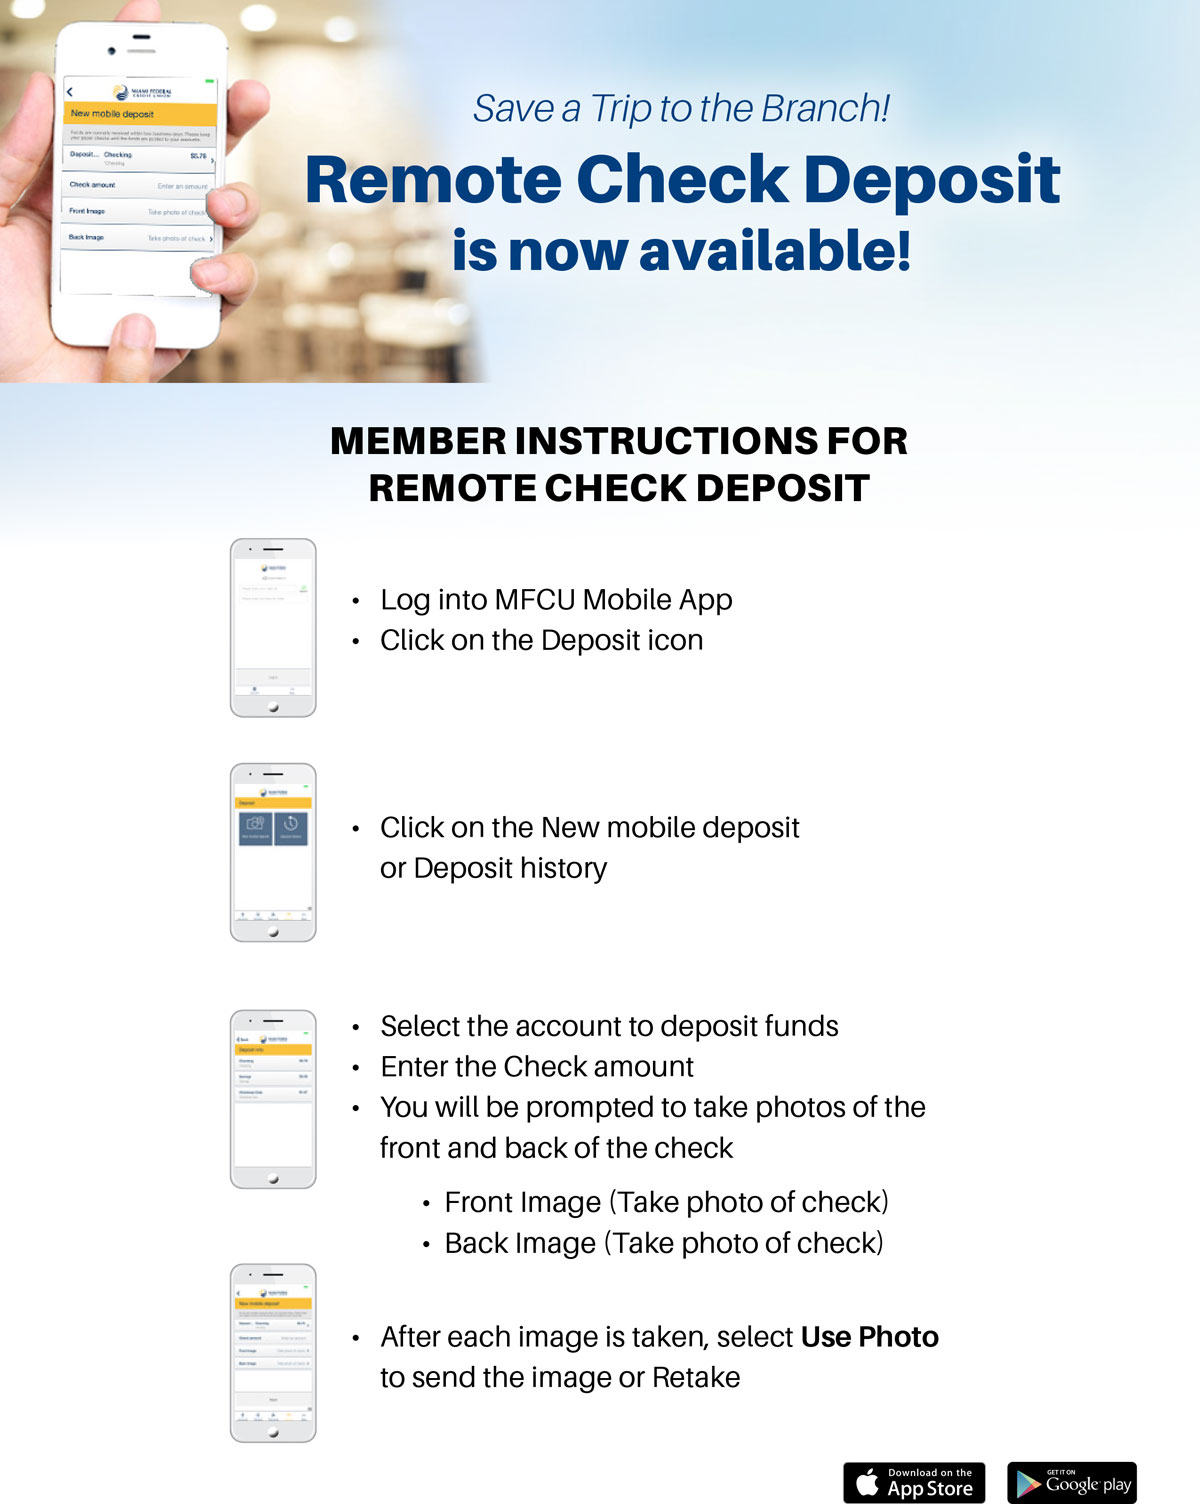 Save a Trip to the Branch. Remote Check Deposit is now available.